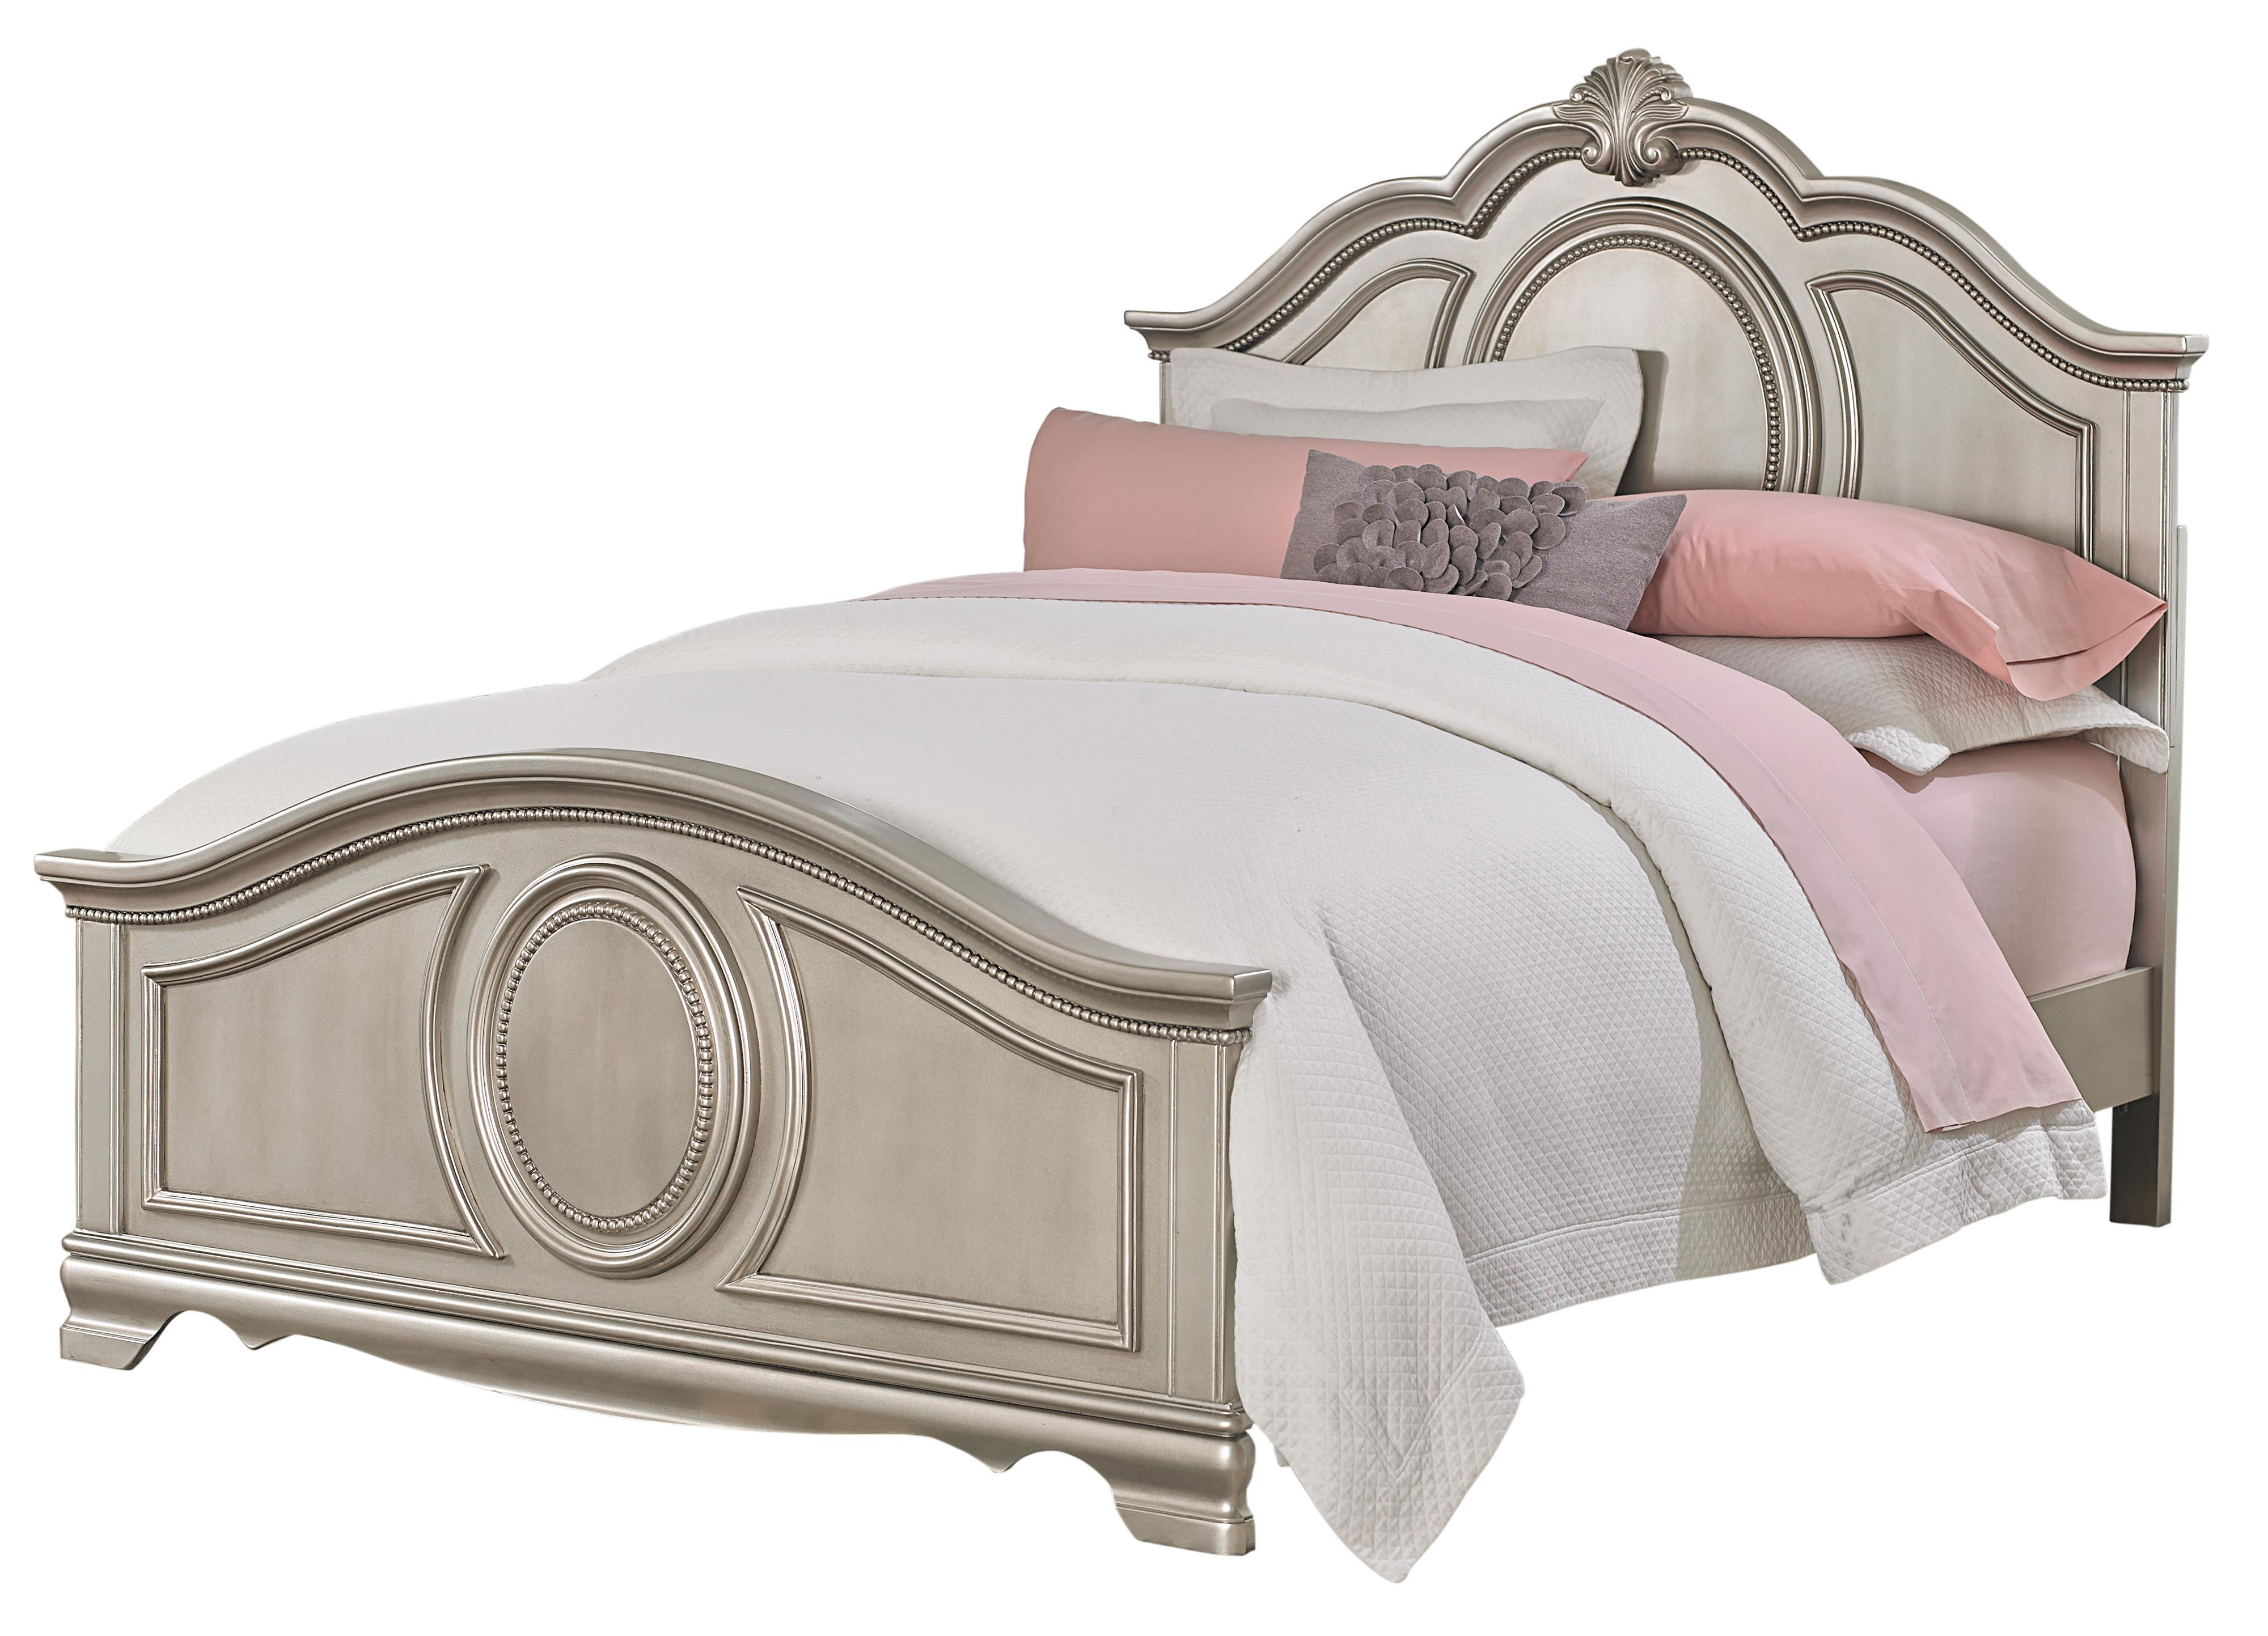 Standard Furniture Jessica Silver Full Bed - Item Number: 93552+61+63